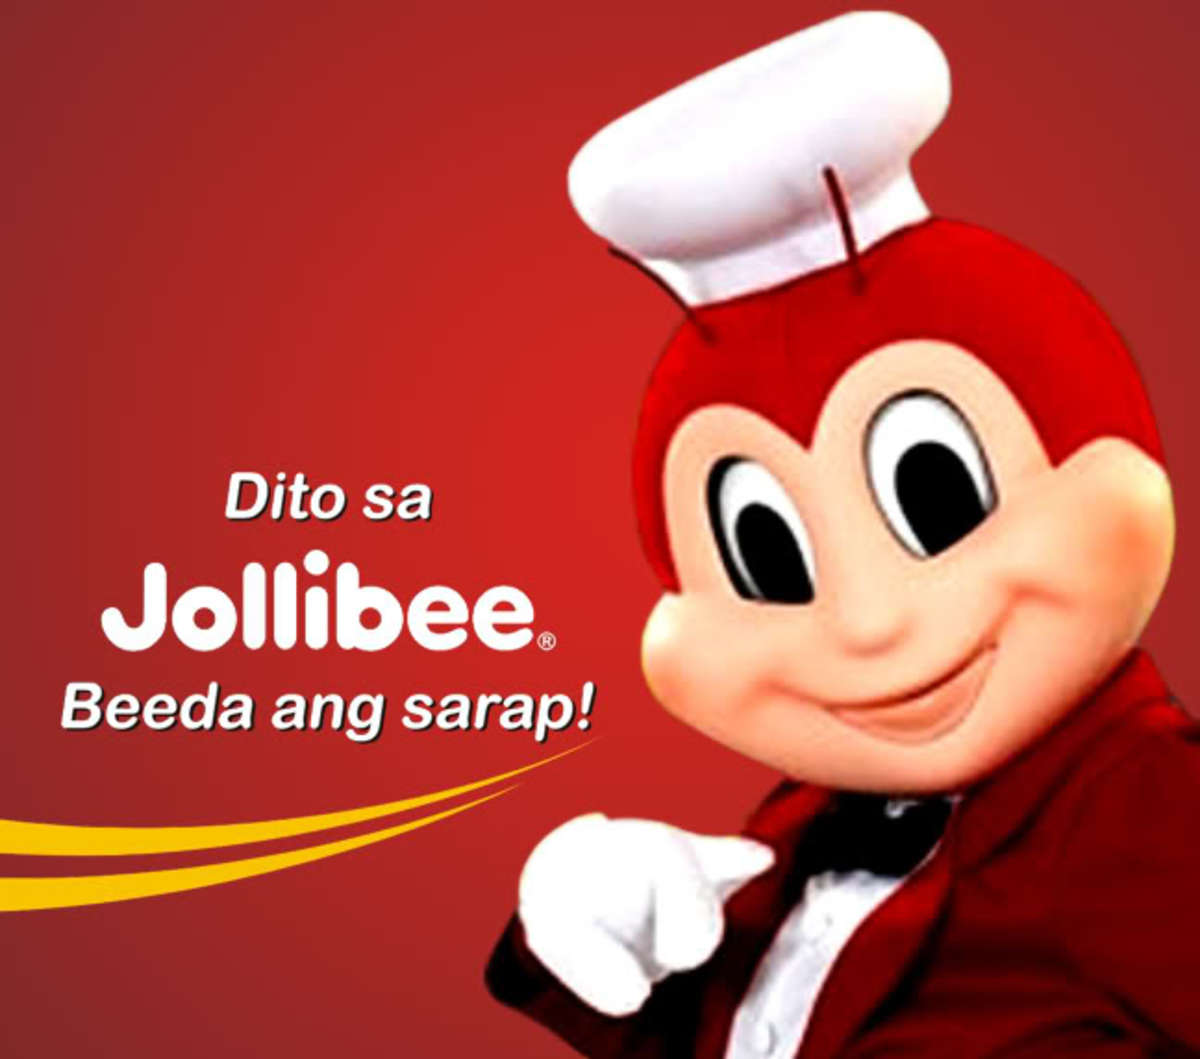 Jollibee, top franchise in the Philippines